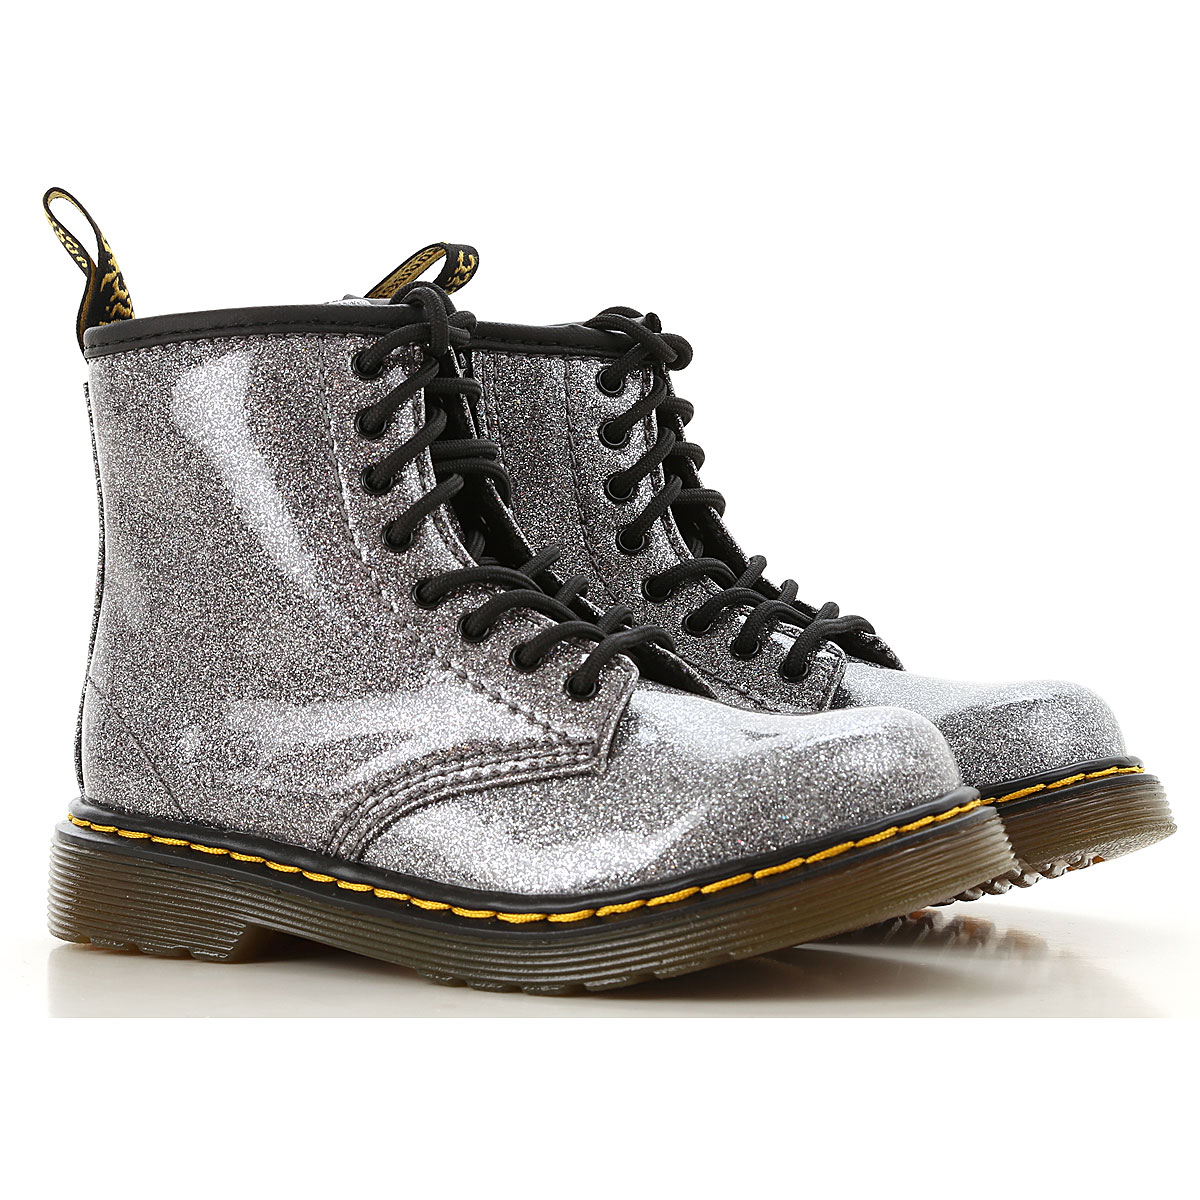 Image of Dr. Martens Boots, Gun Metal, Glitter Coated Fabric, 2017, 22 23 25 26 27